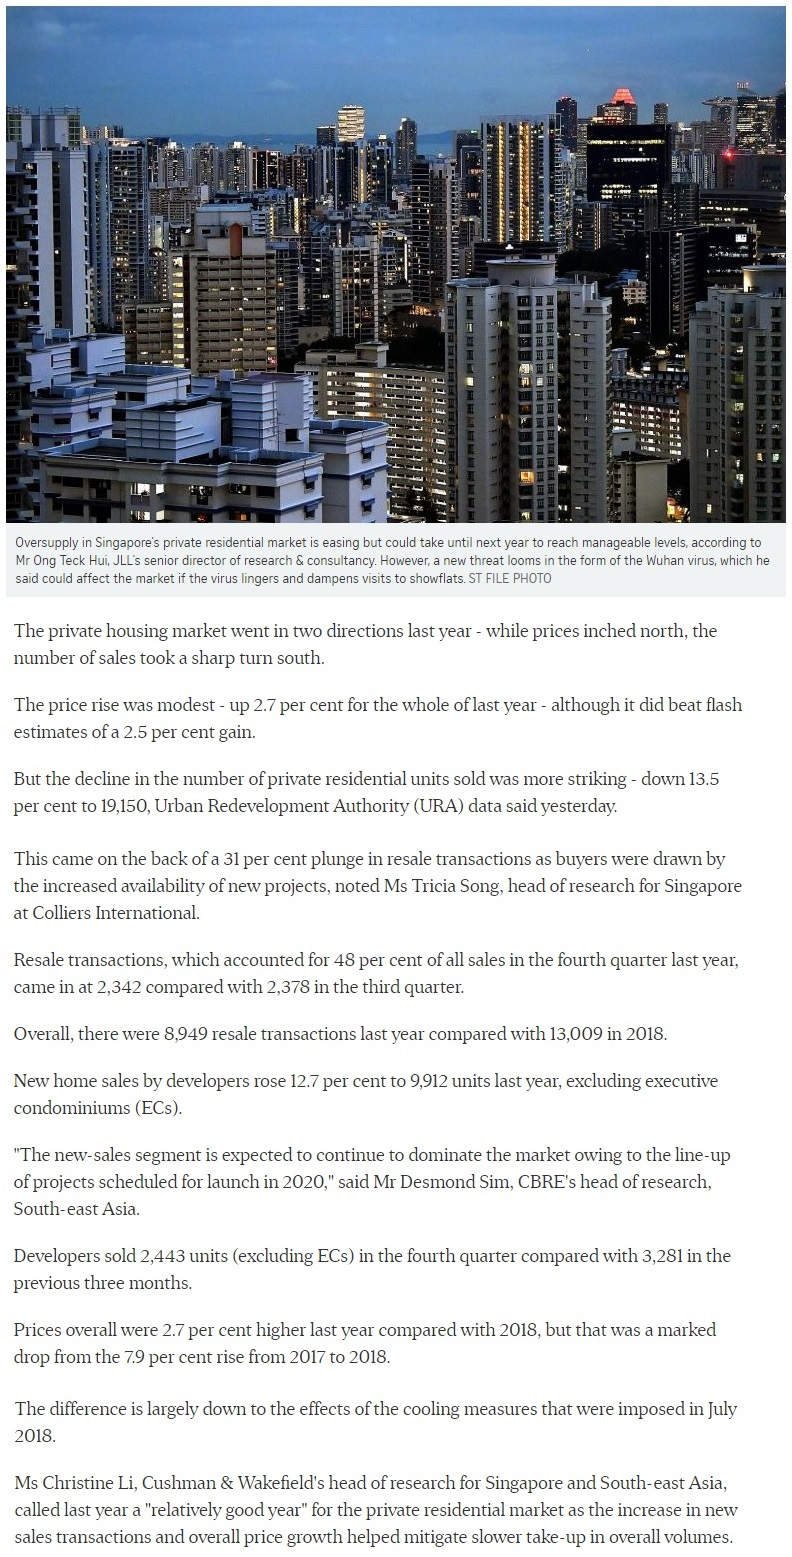 The Lumos - Singapore private home prices inch up 2.7% for 2019 Part 1